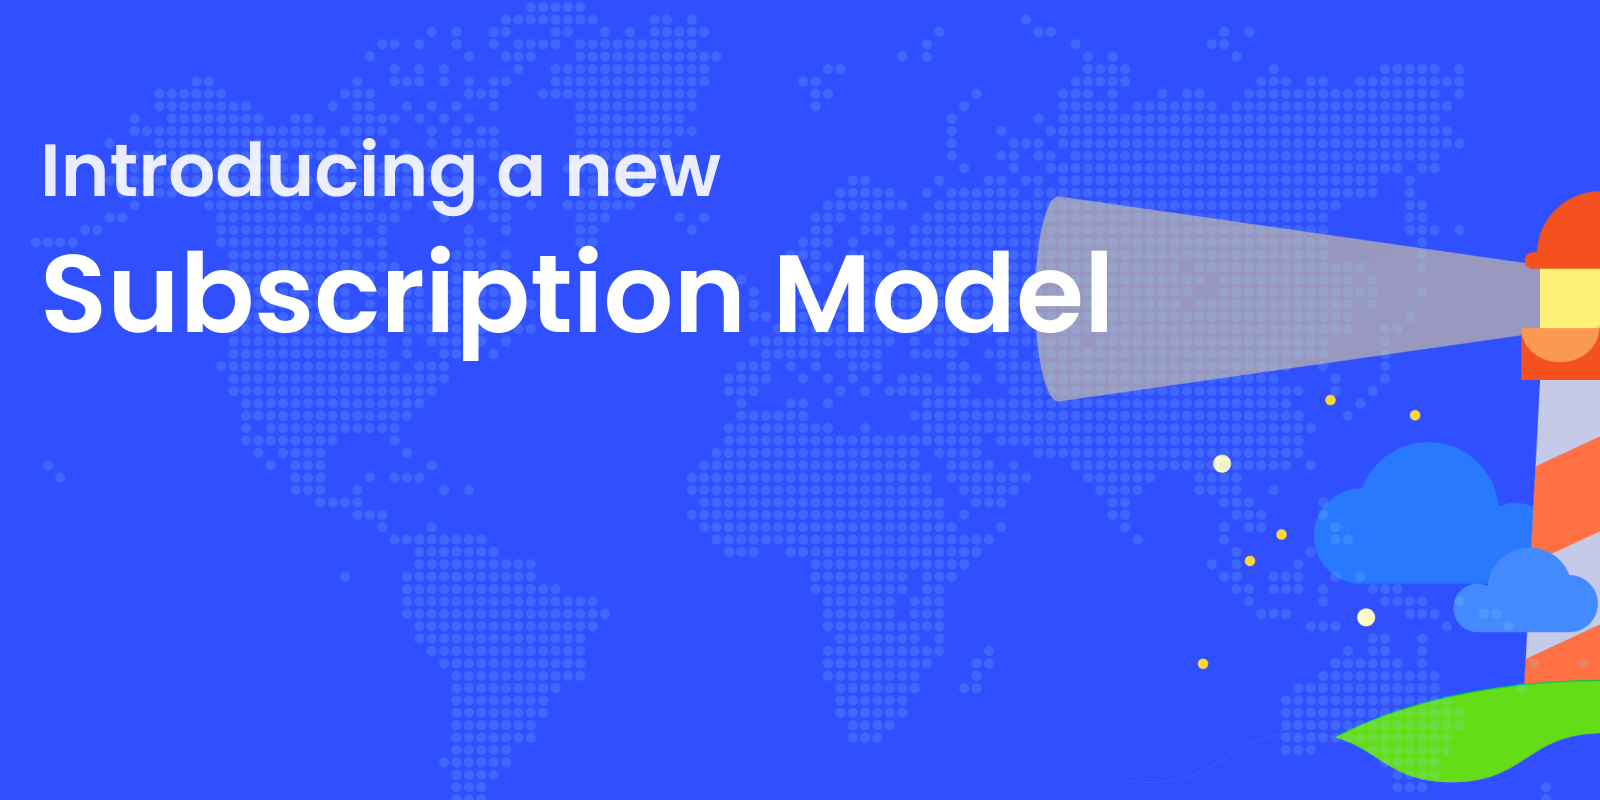 Introducing a new Subscription Model